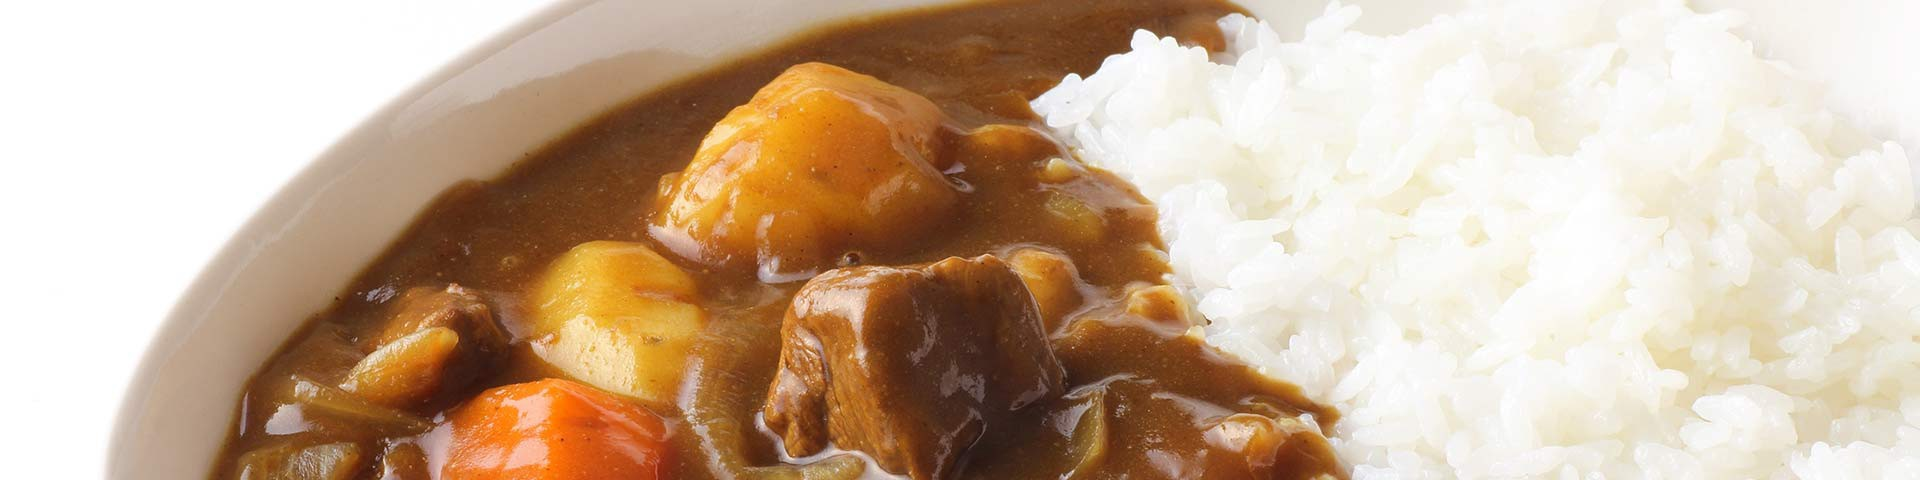 CUISINE JAPONAISE | CURRY | KARE RICE